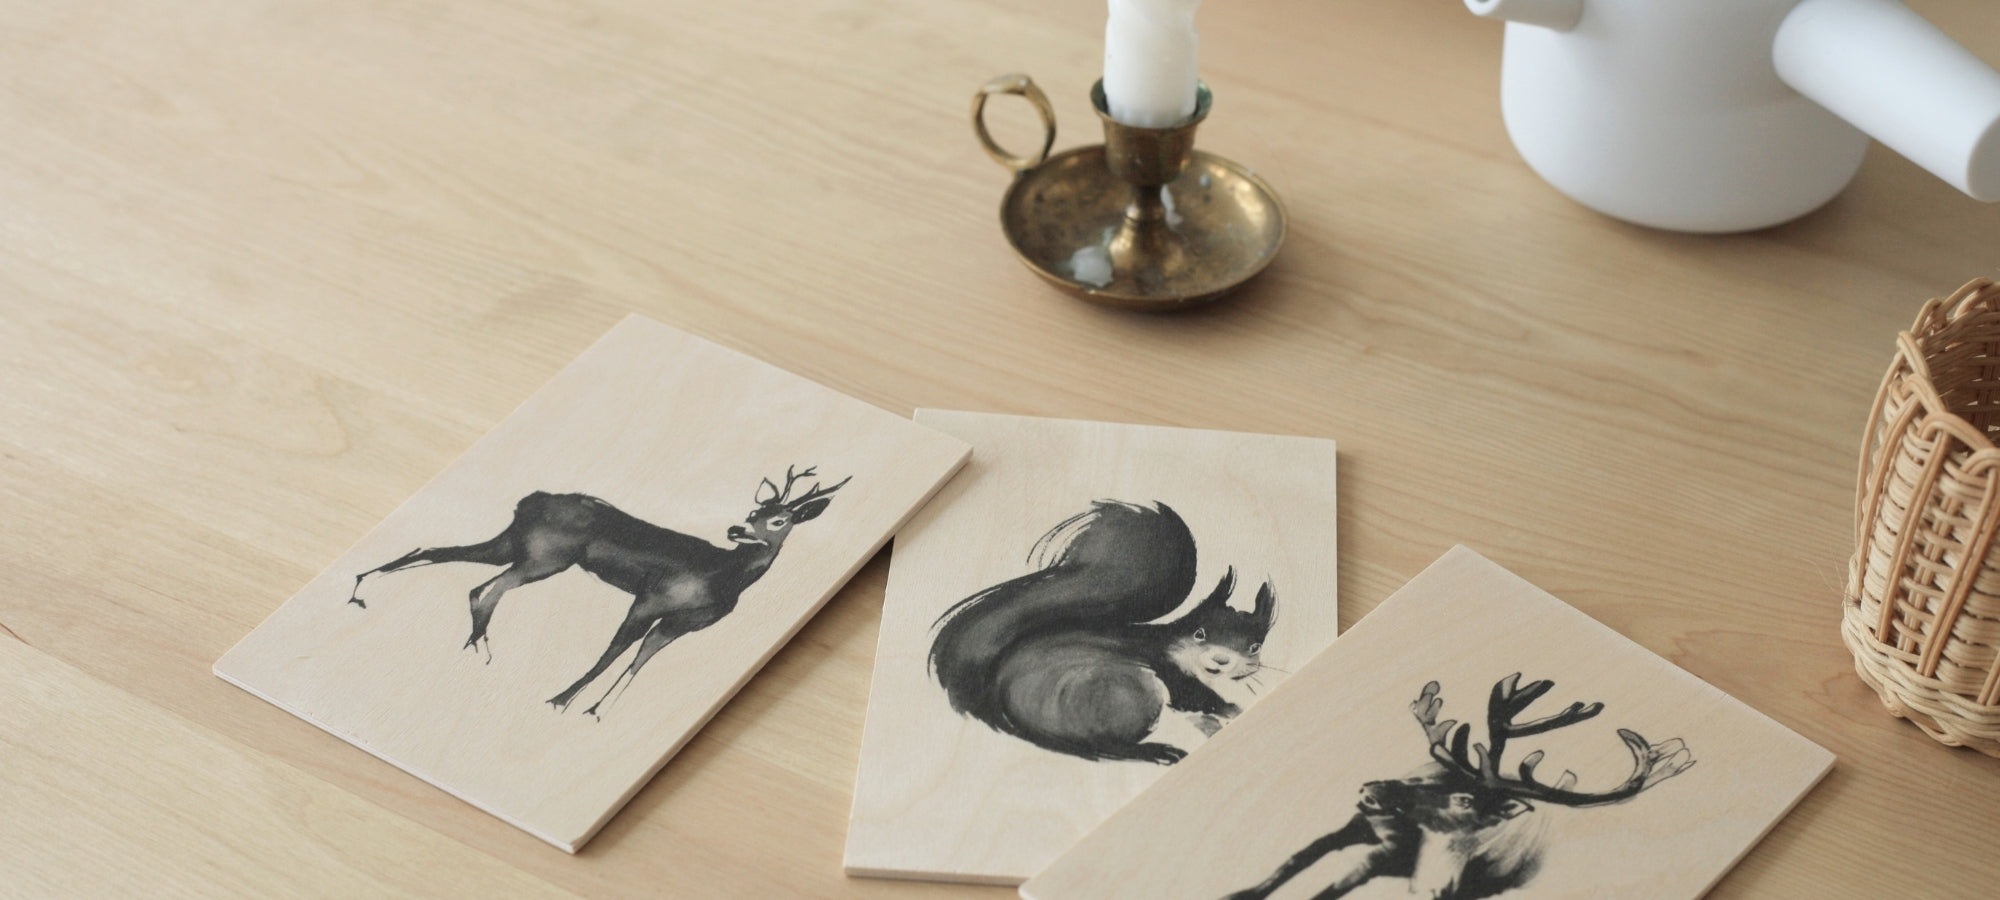 Teemu Jarvi wooden art cards on the table